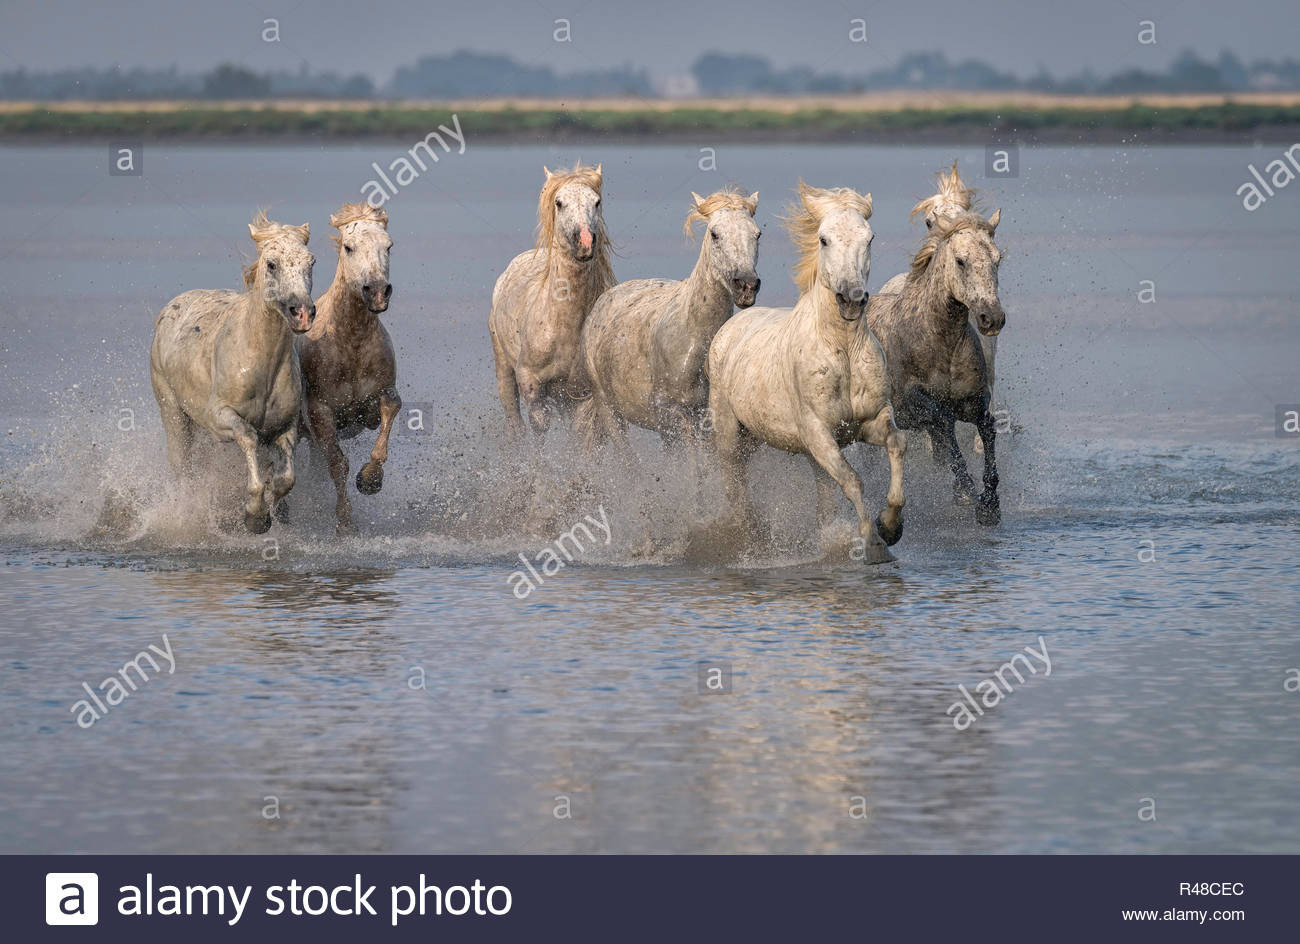 Herd of white Camargue horses running through the water in France - Stock Image